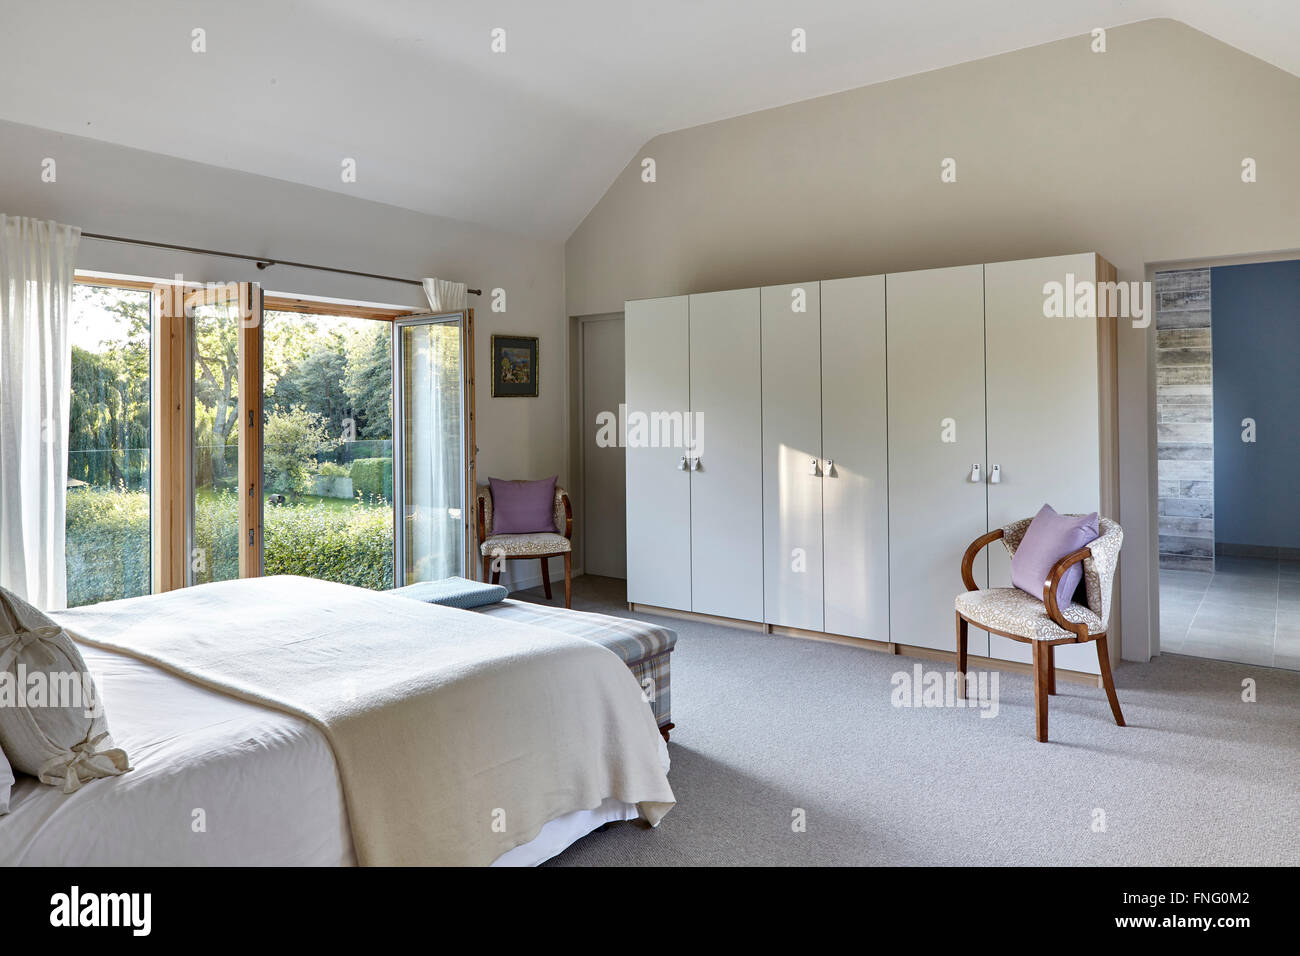 Master Bed Room With View To Bathroom And Double Glass Full Height